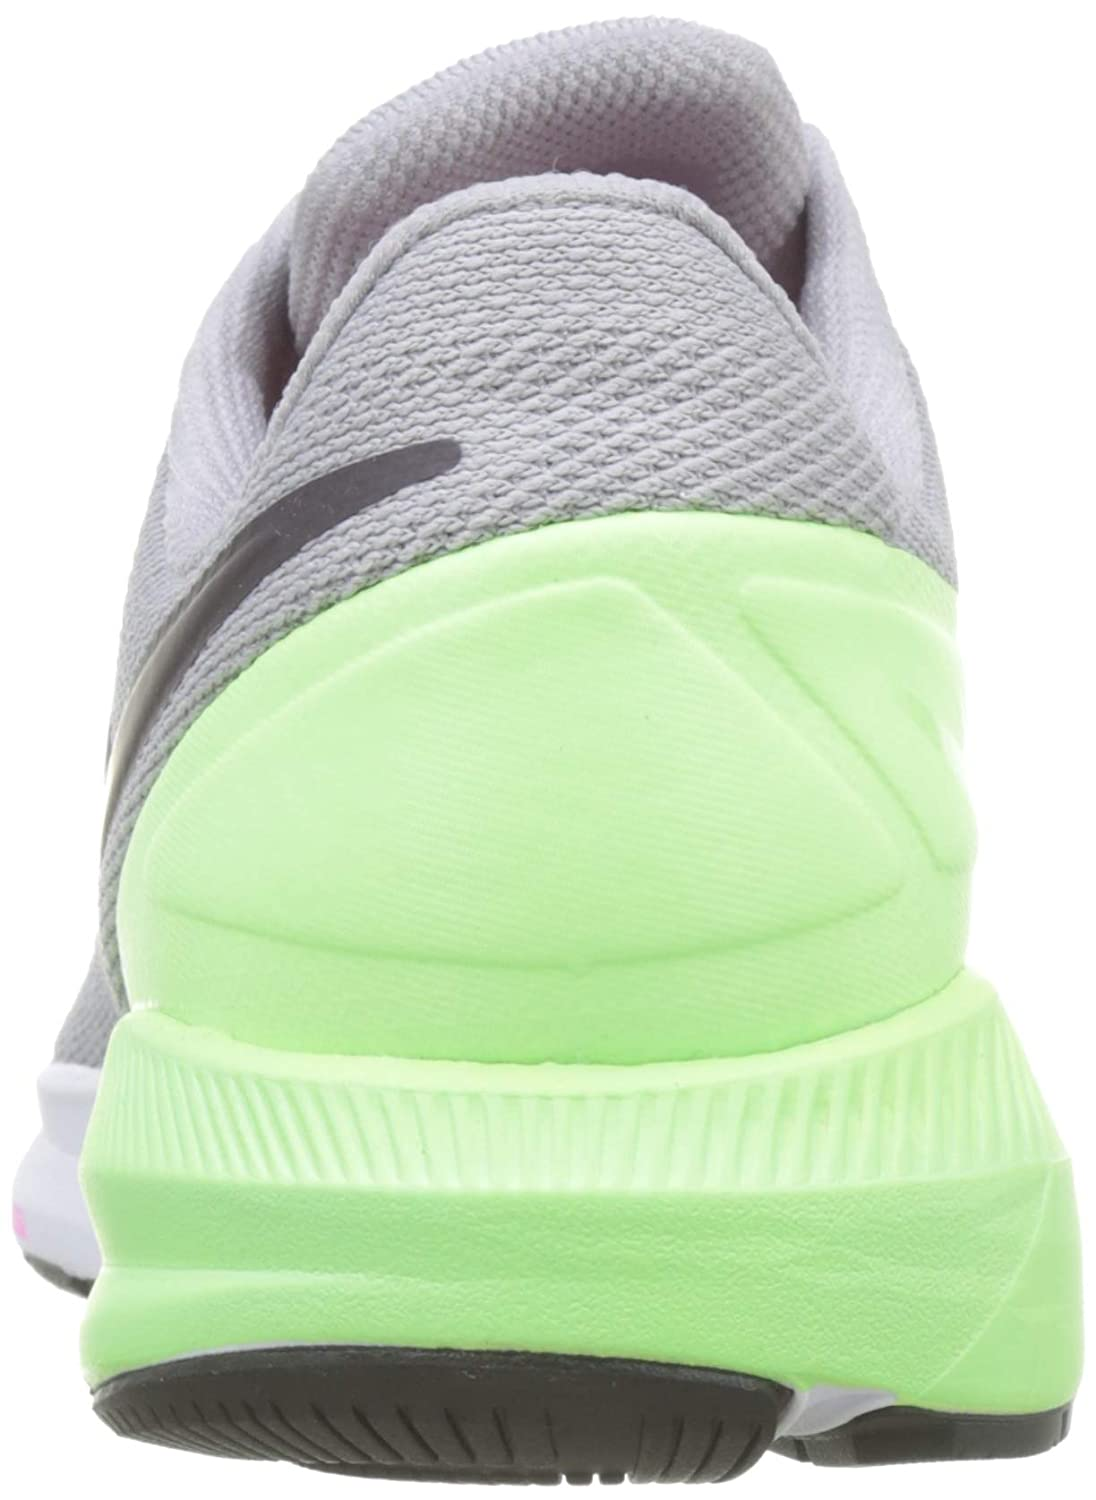 Chaussures dAthl/étisme Homme Nike Air Zoom Structure 22